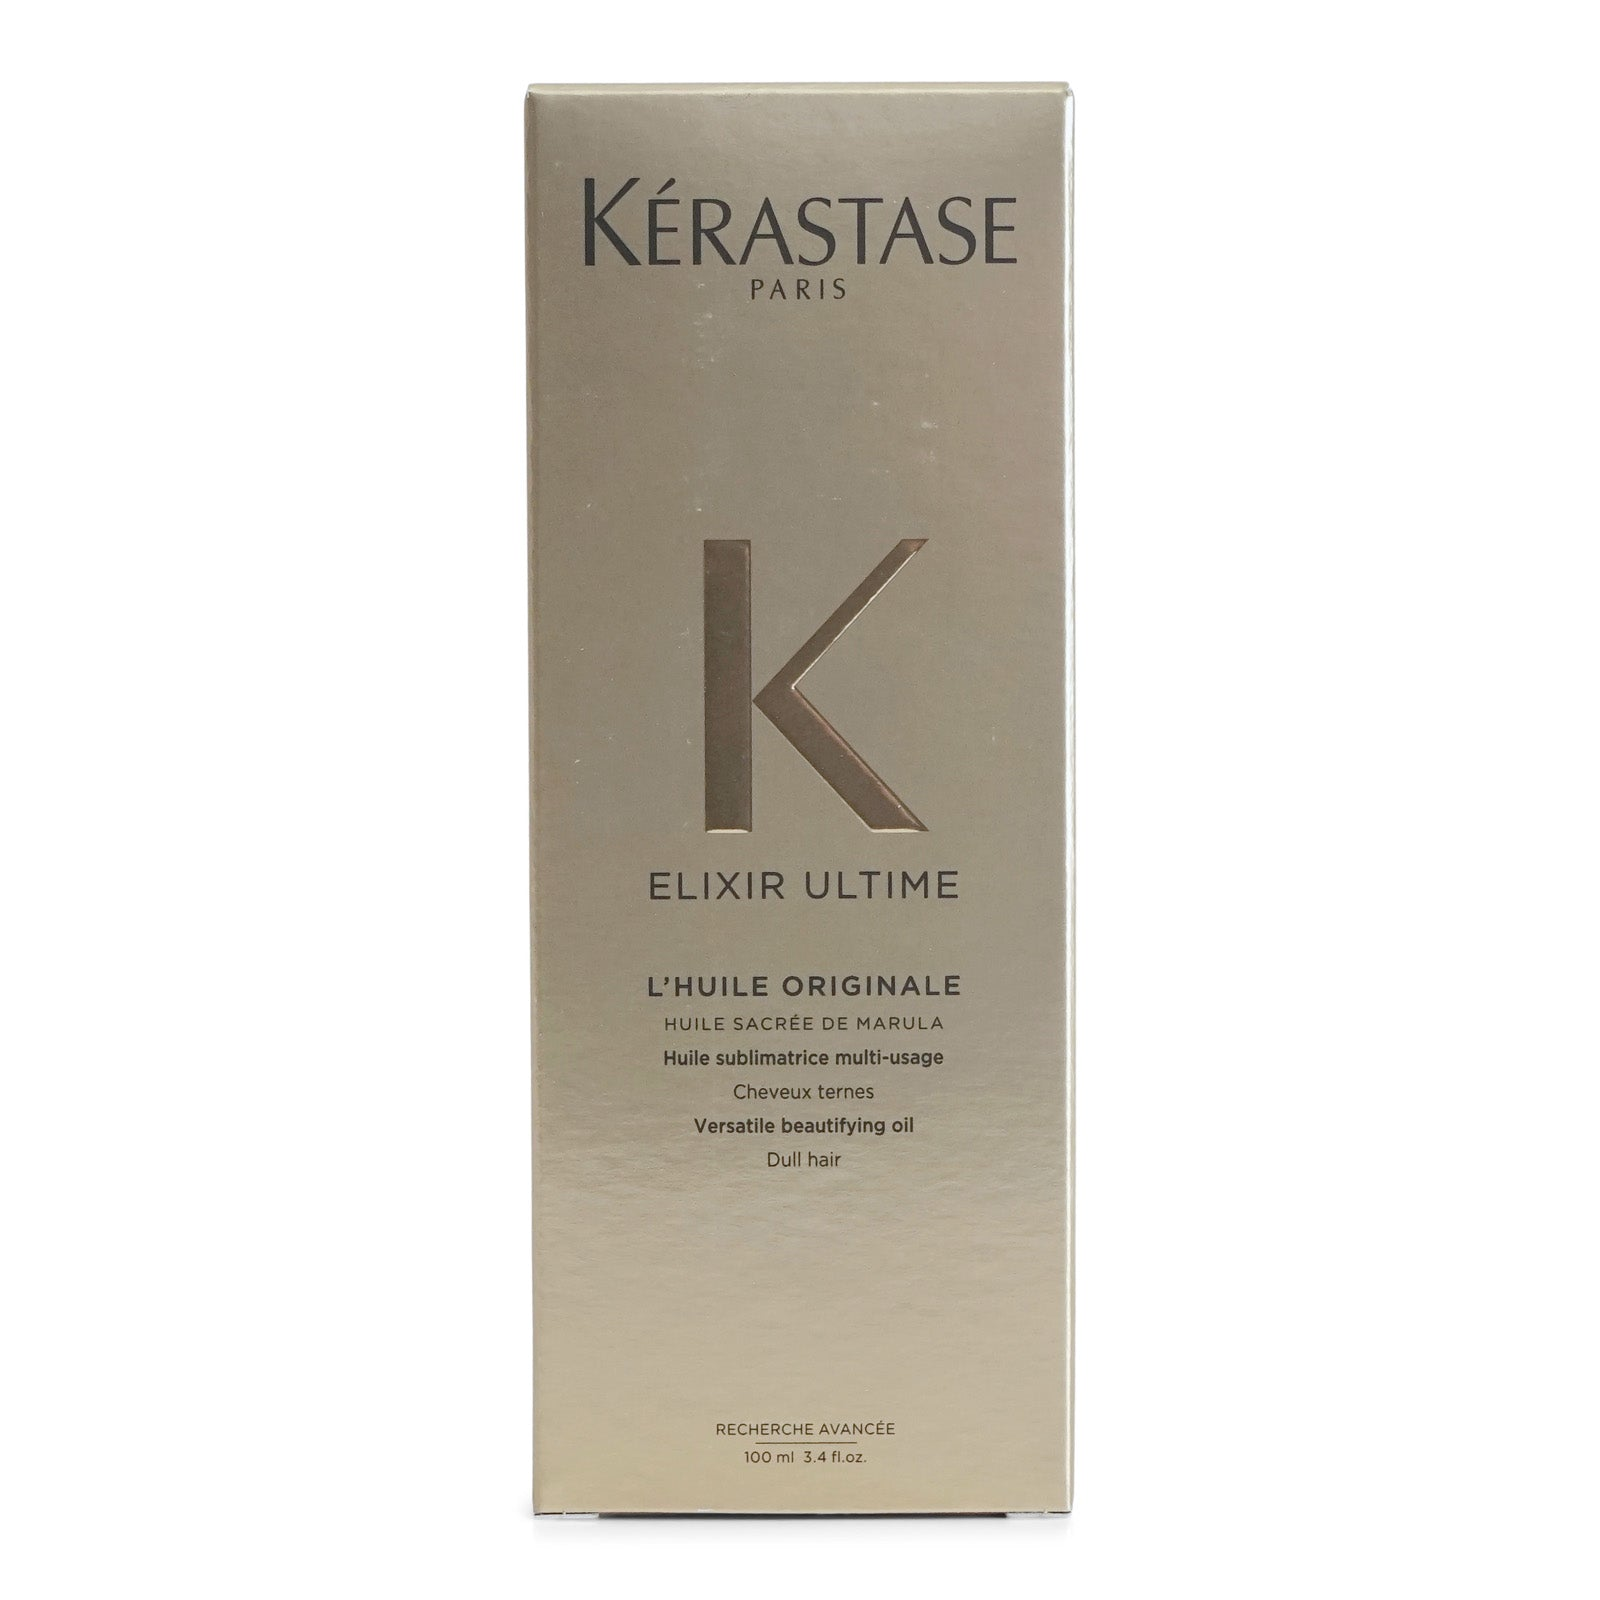 Kerastase Elixir Ultime Lhuile Original Hair Oil, Versatile Beautifying Oil that adds shine and prevents breakage (3.4 oz/100ml) (3/cs)